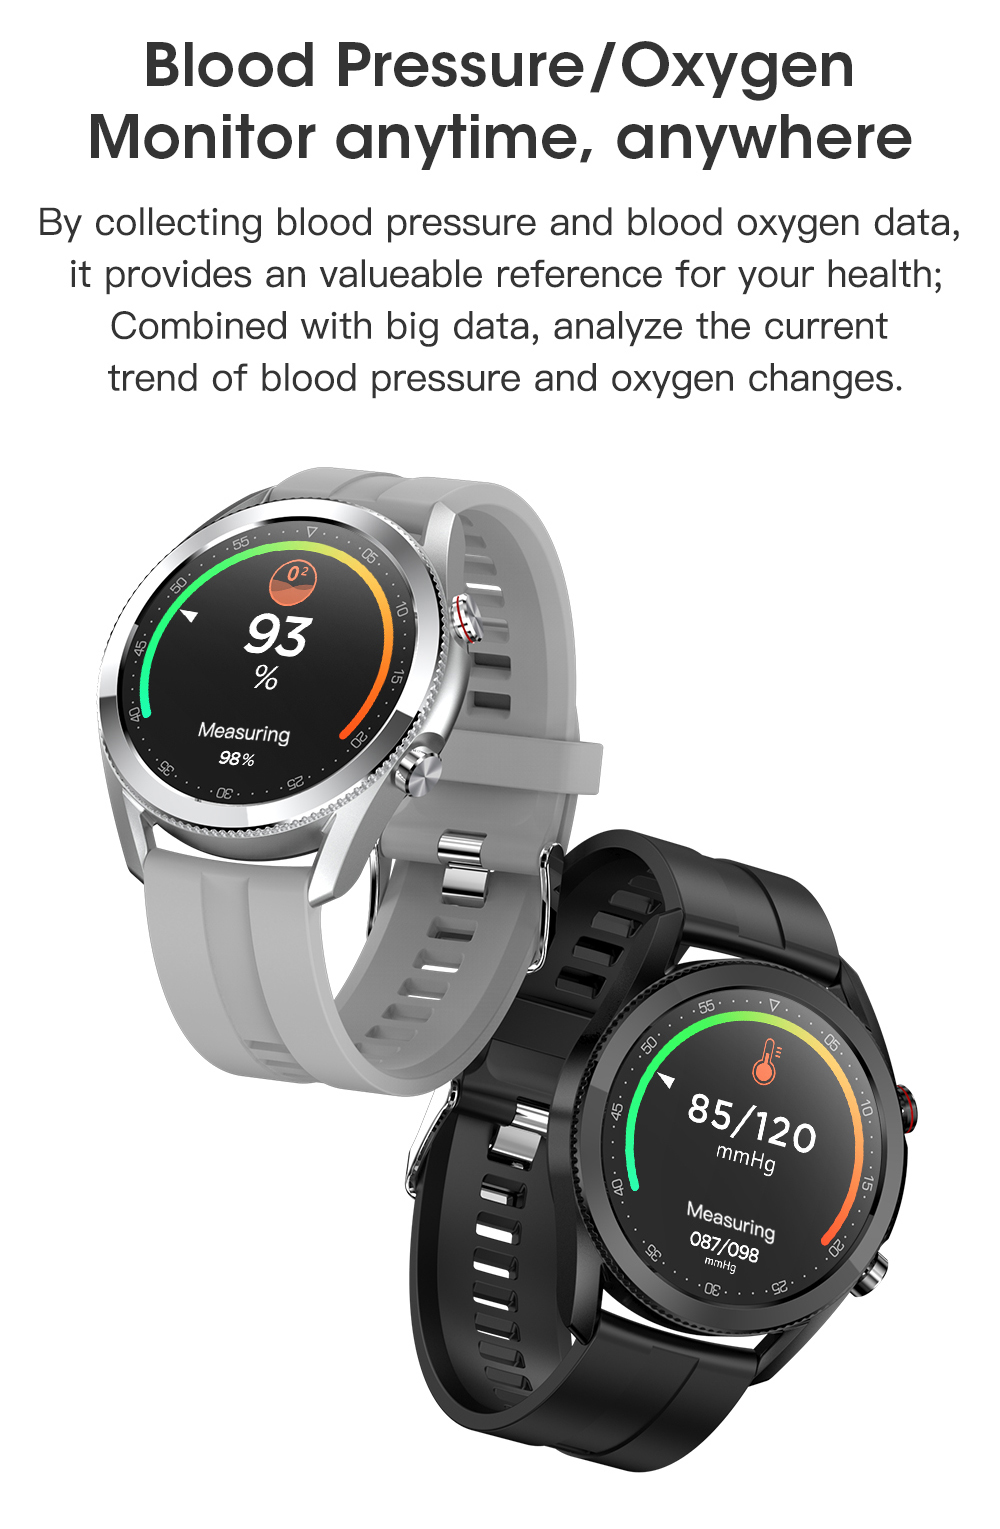 H9d98548f1621495bb1e3d686910538995 Timewolf Smart Watch Men 2021 IP68 Waterproof Android Full Touch Sports Smartwatch Bluetooth Call For Samsung Huawei Android IOS